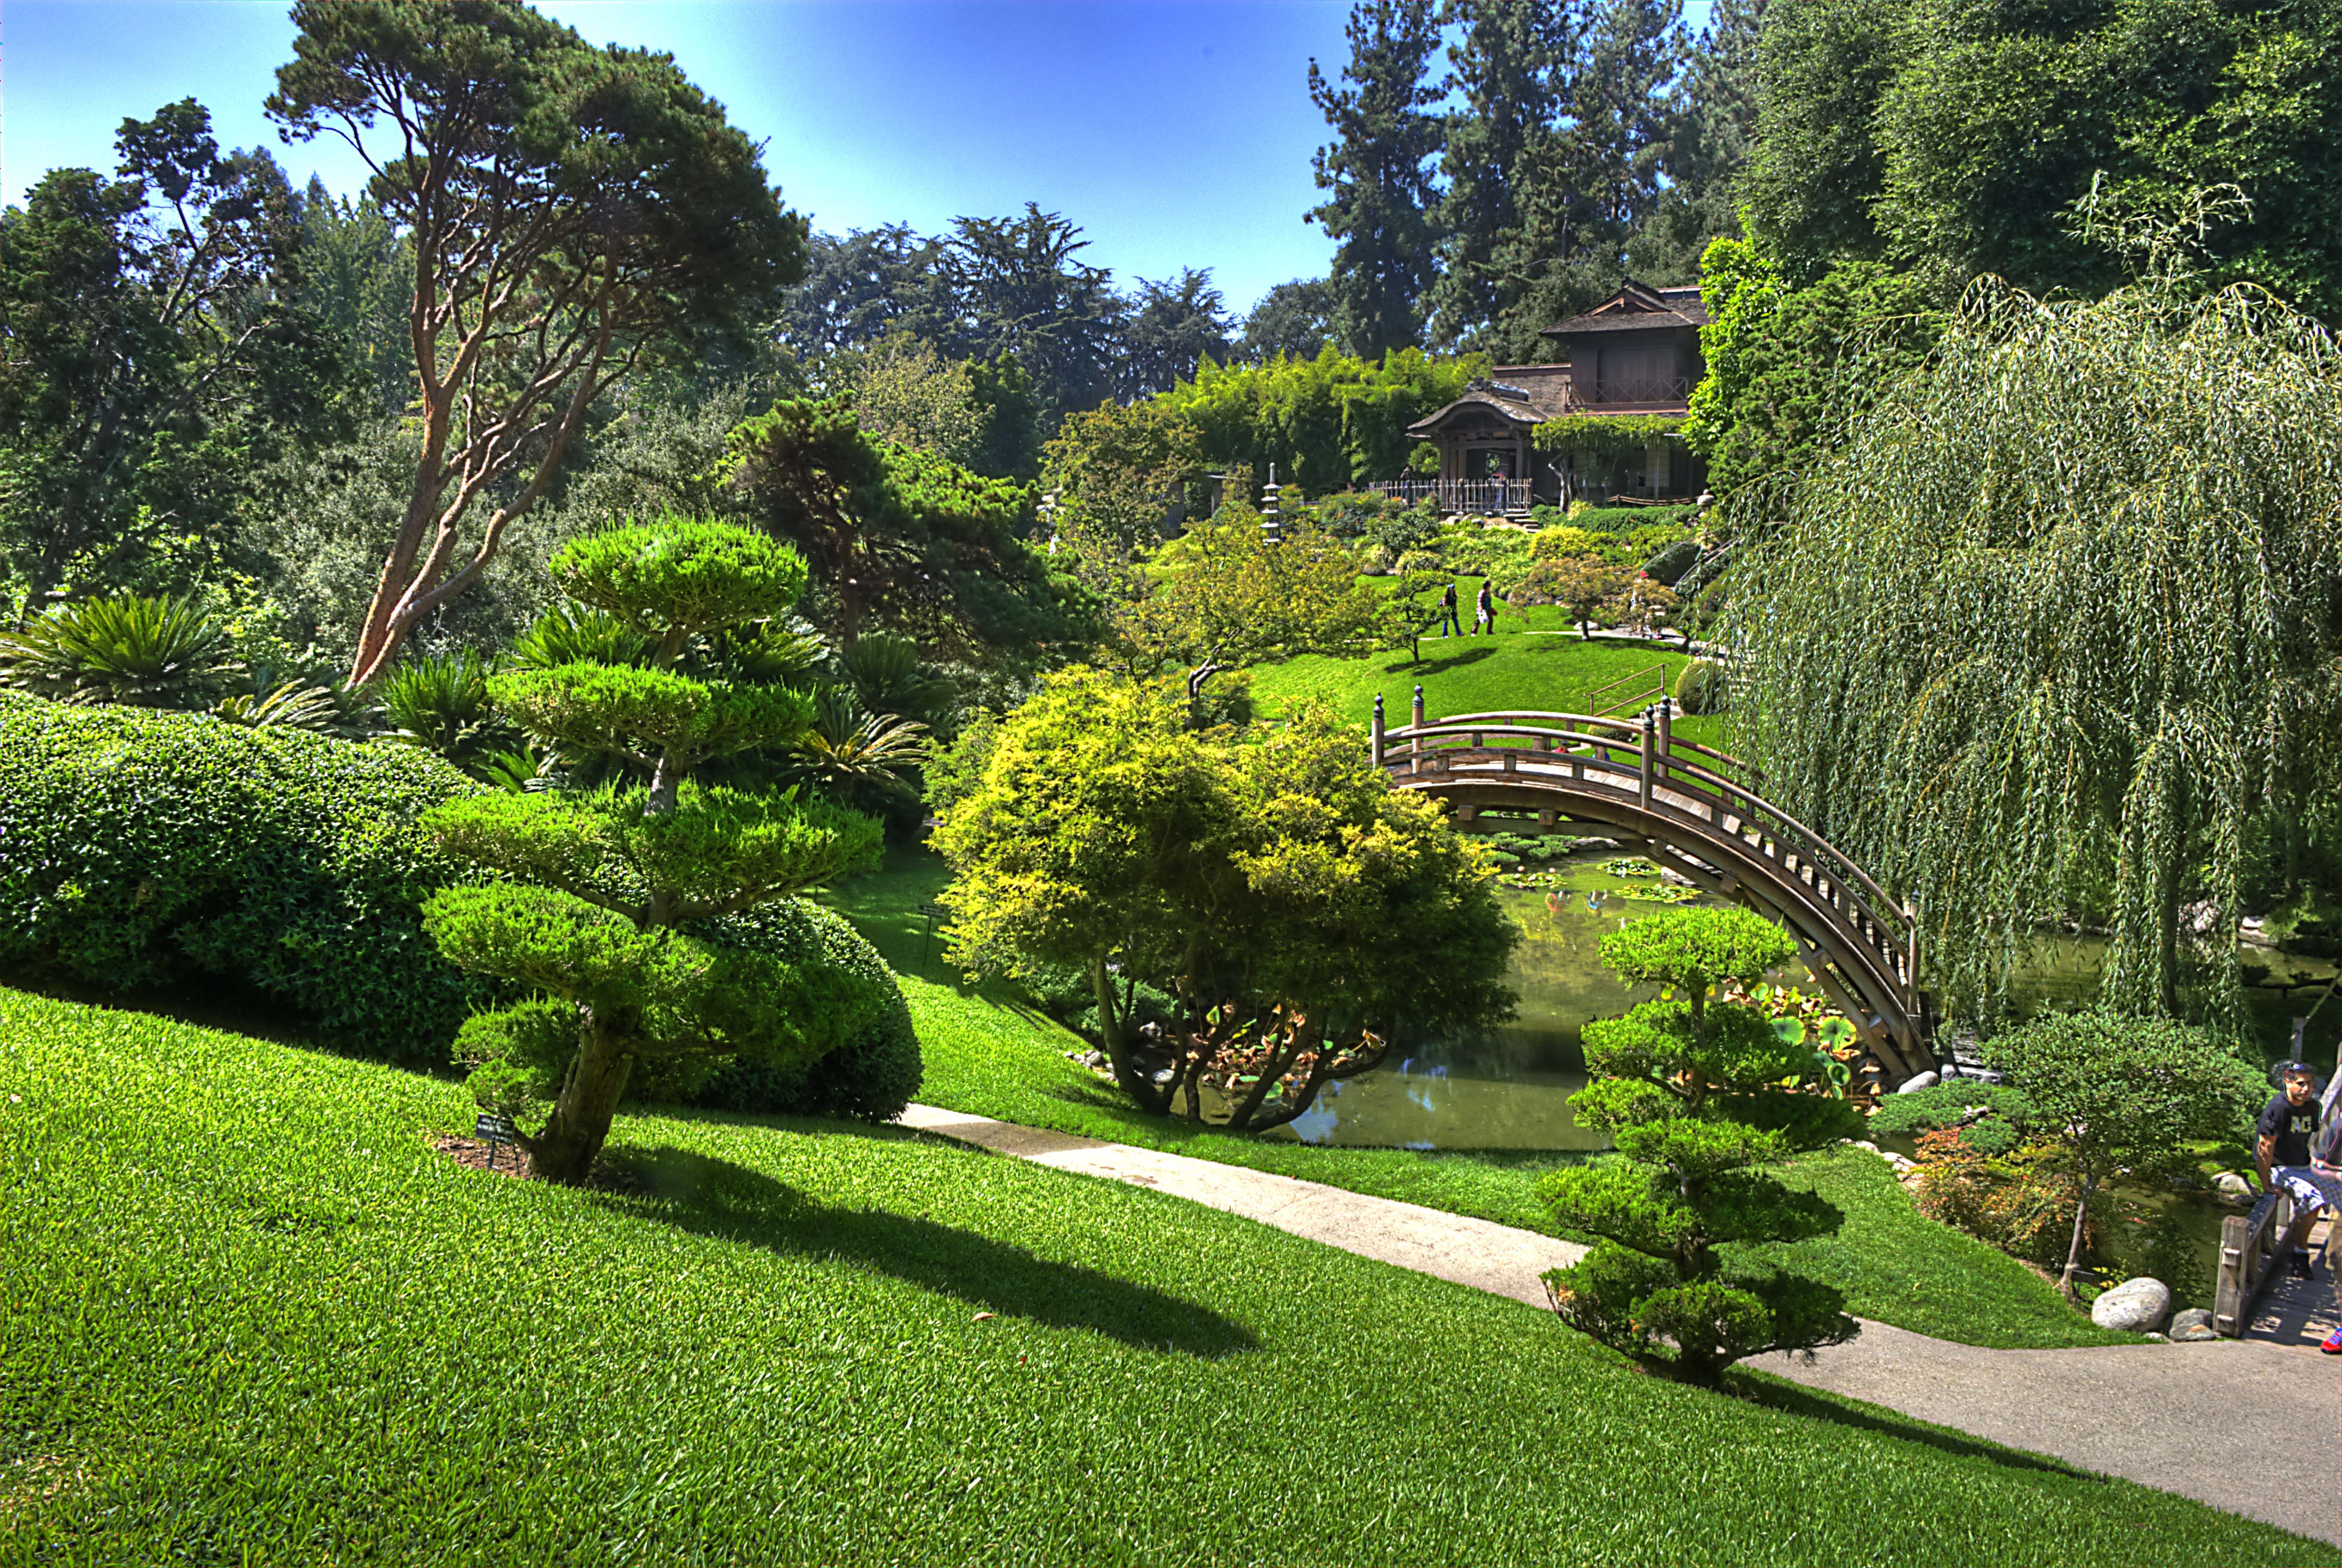 Huntington library japanese garden gardens design ideas for The huntington